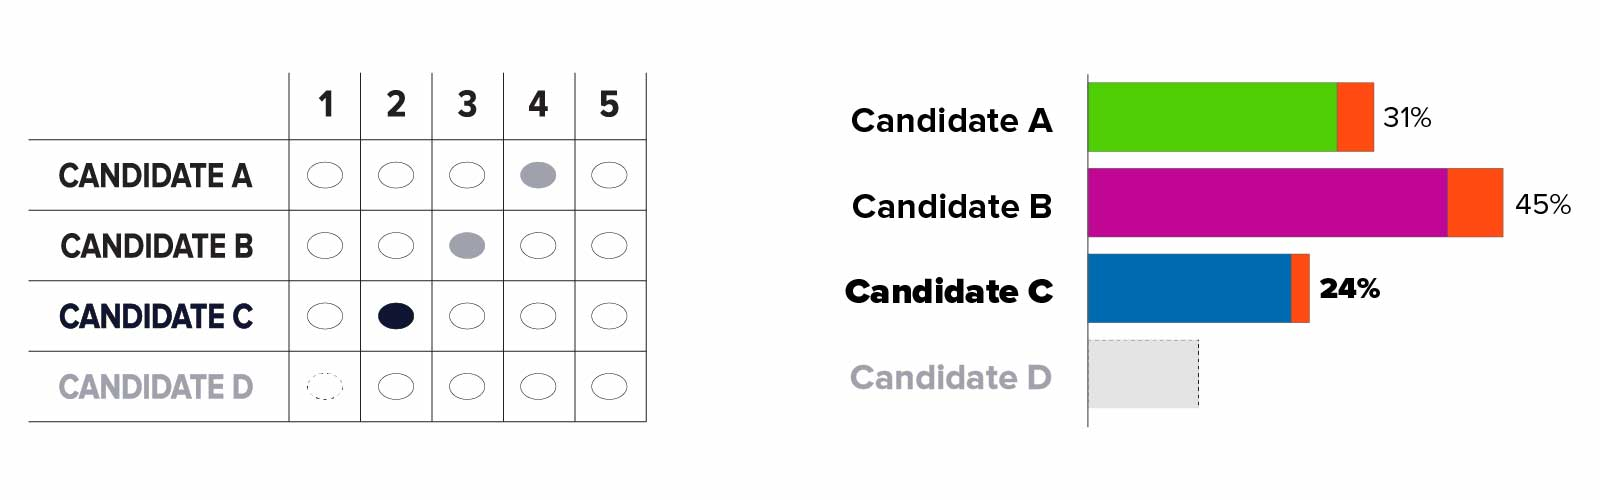 On left: A correctly marked RCV grid ballot where candidate A through D appears in rows and number 1 through 5 appears in columns. Candidate C is ranked 2, Candidate B is ranked 3, and Candidate A is ranked 4. Candidate D's name is grayed out because they were eliminated in the last round. The oval for Candidate C who is ranked 2 is darker than the other ovals. On right: Bar chart displaying the results of vote after Round 1. Candidate A is shown in green and has 27 percent of first-choice votes plus 4 percent of Candidate D's orange votes to total 31 percent. Candidate B is shown in purple and has 39 percent of first-choice votes plus 6 percent of Candidate D's orange votes to total 45 percent. Candidate C is shown in blue and has 22 percent of first-choice votes plus 2 percent of Candidate D's orange votes to total 24 percent. Candidate D's bar and name is grayed out because they are no longer active.